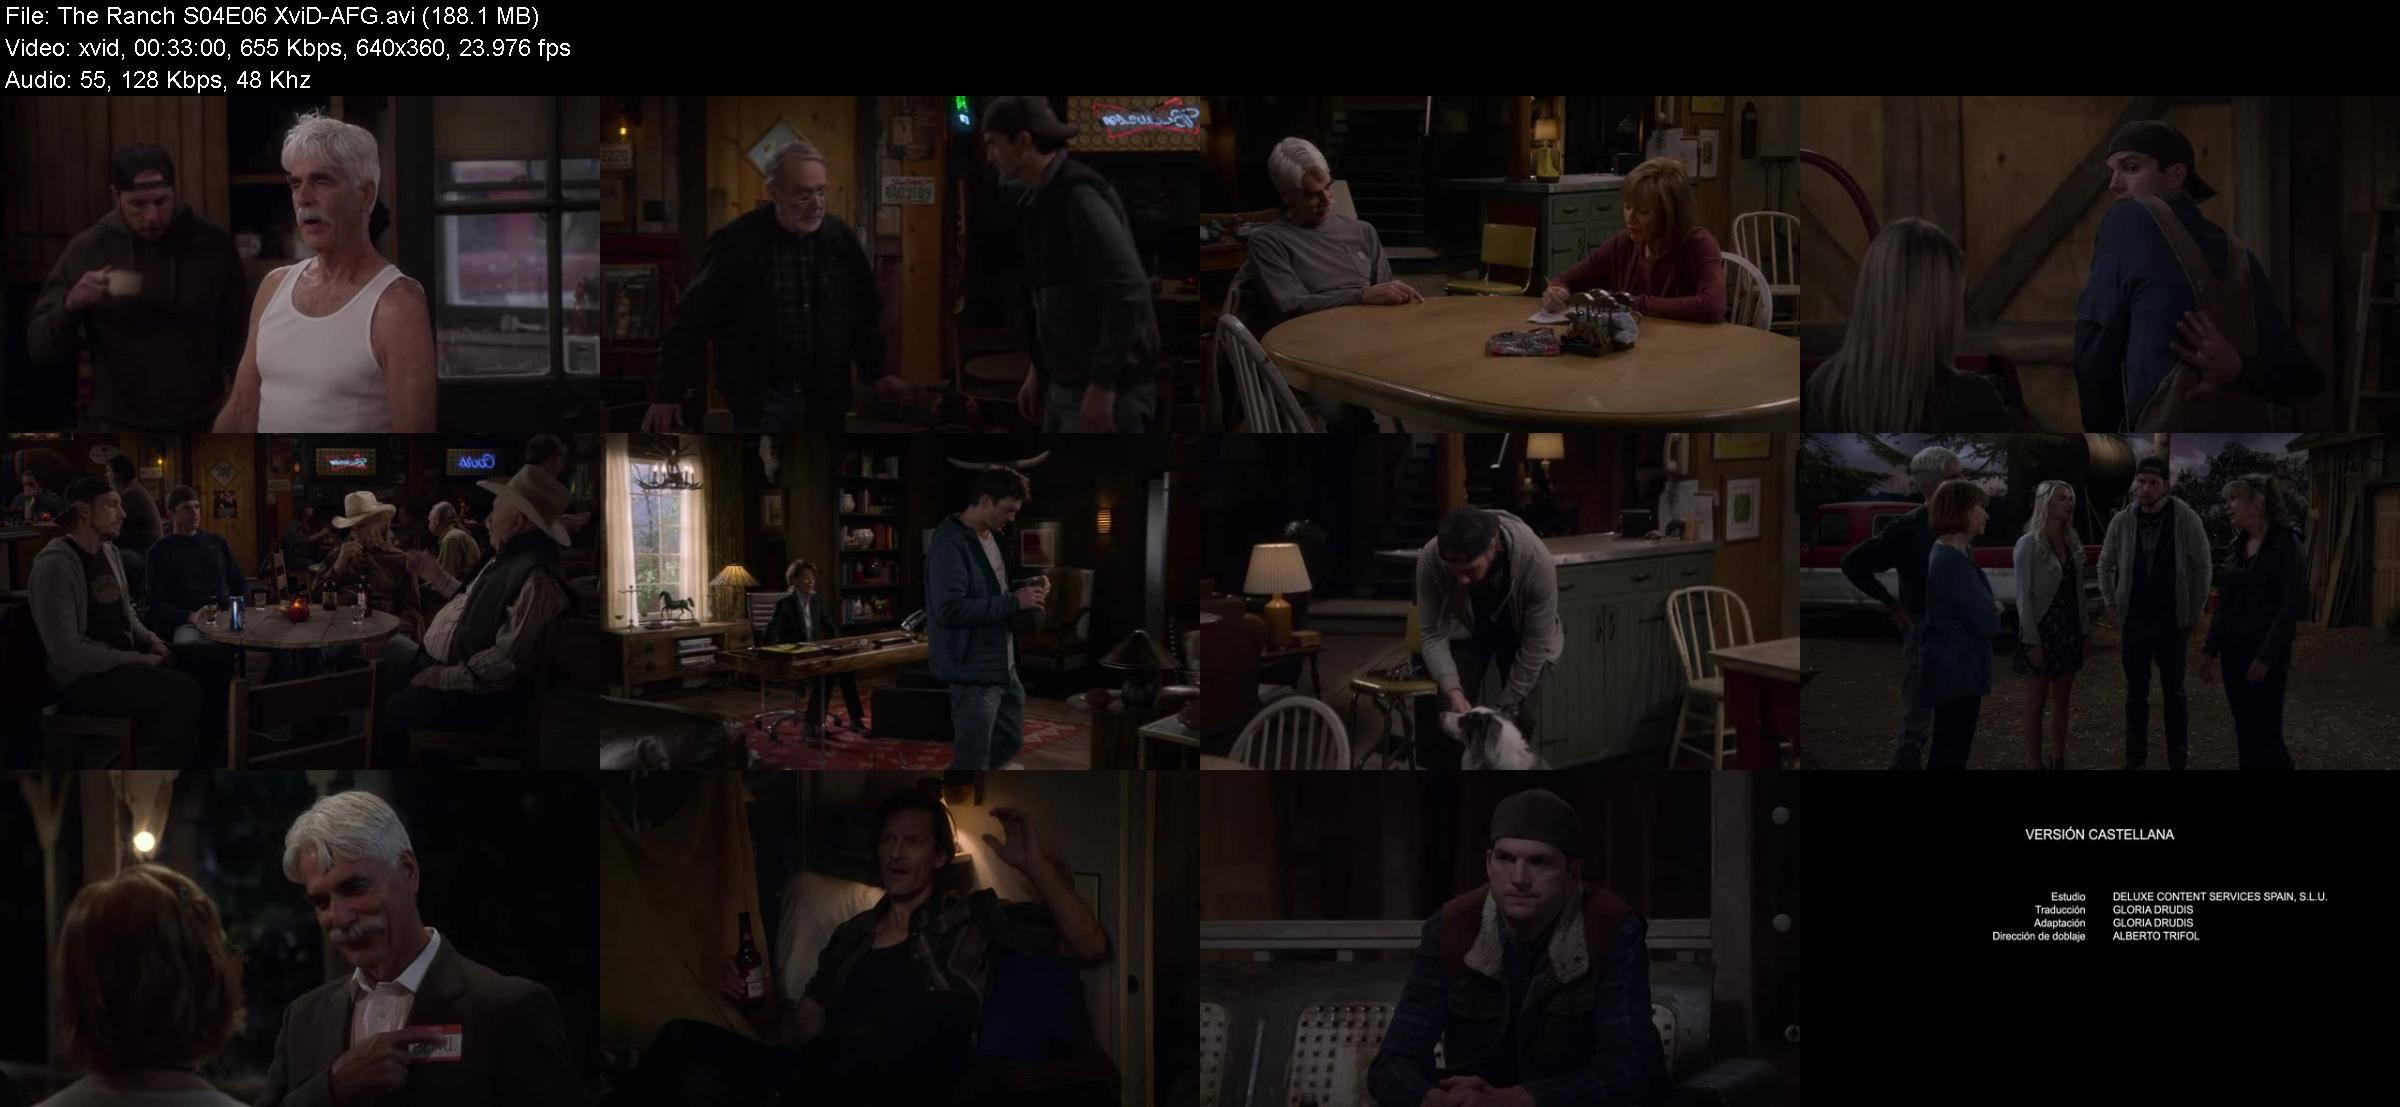 The Ranch S04E06 XviD-AFG